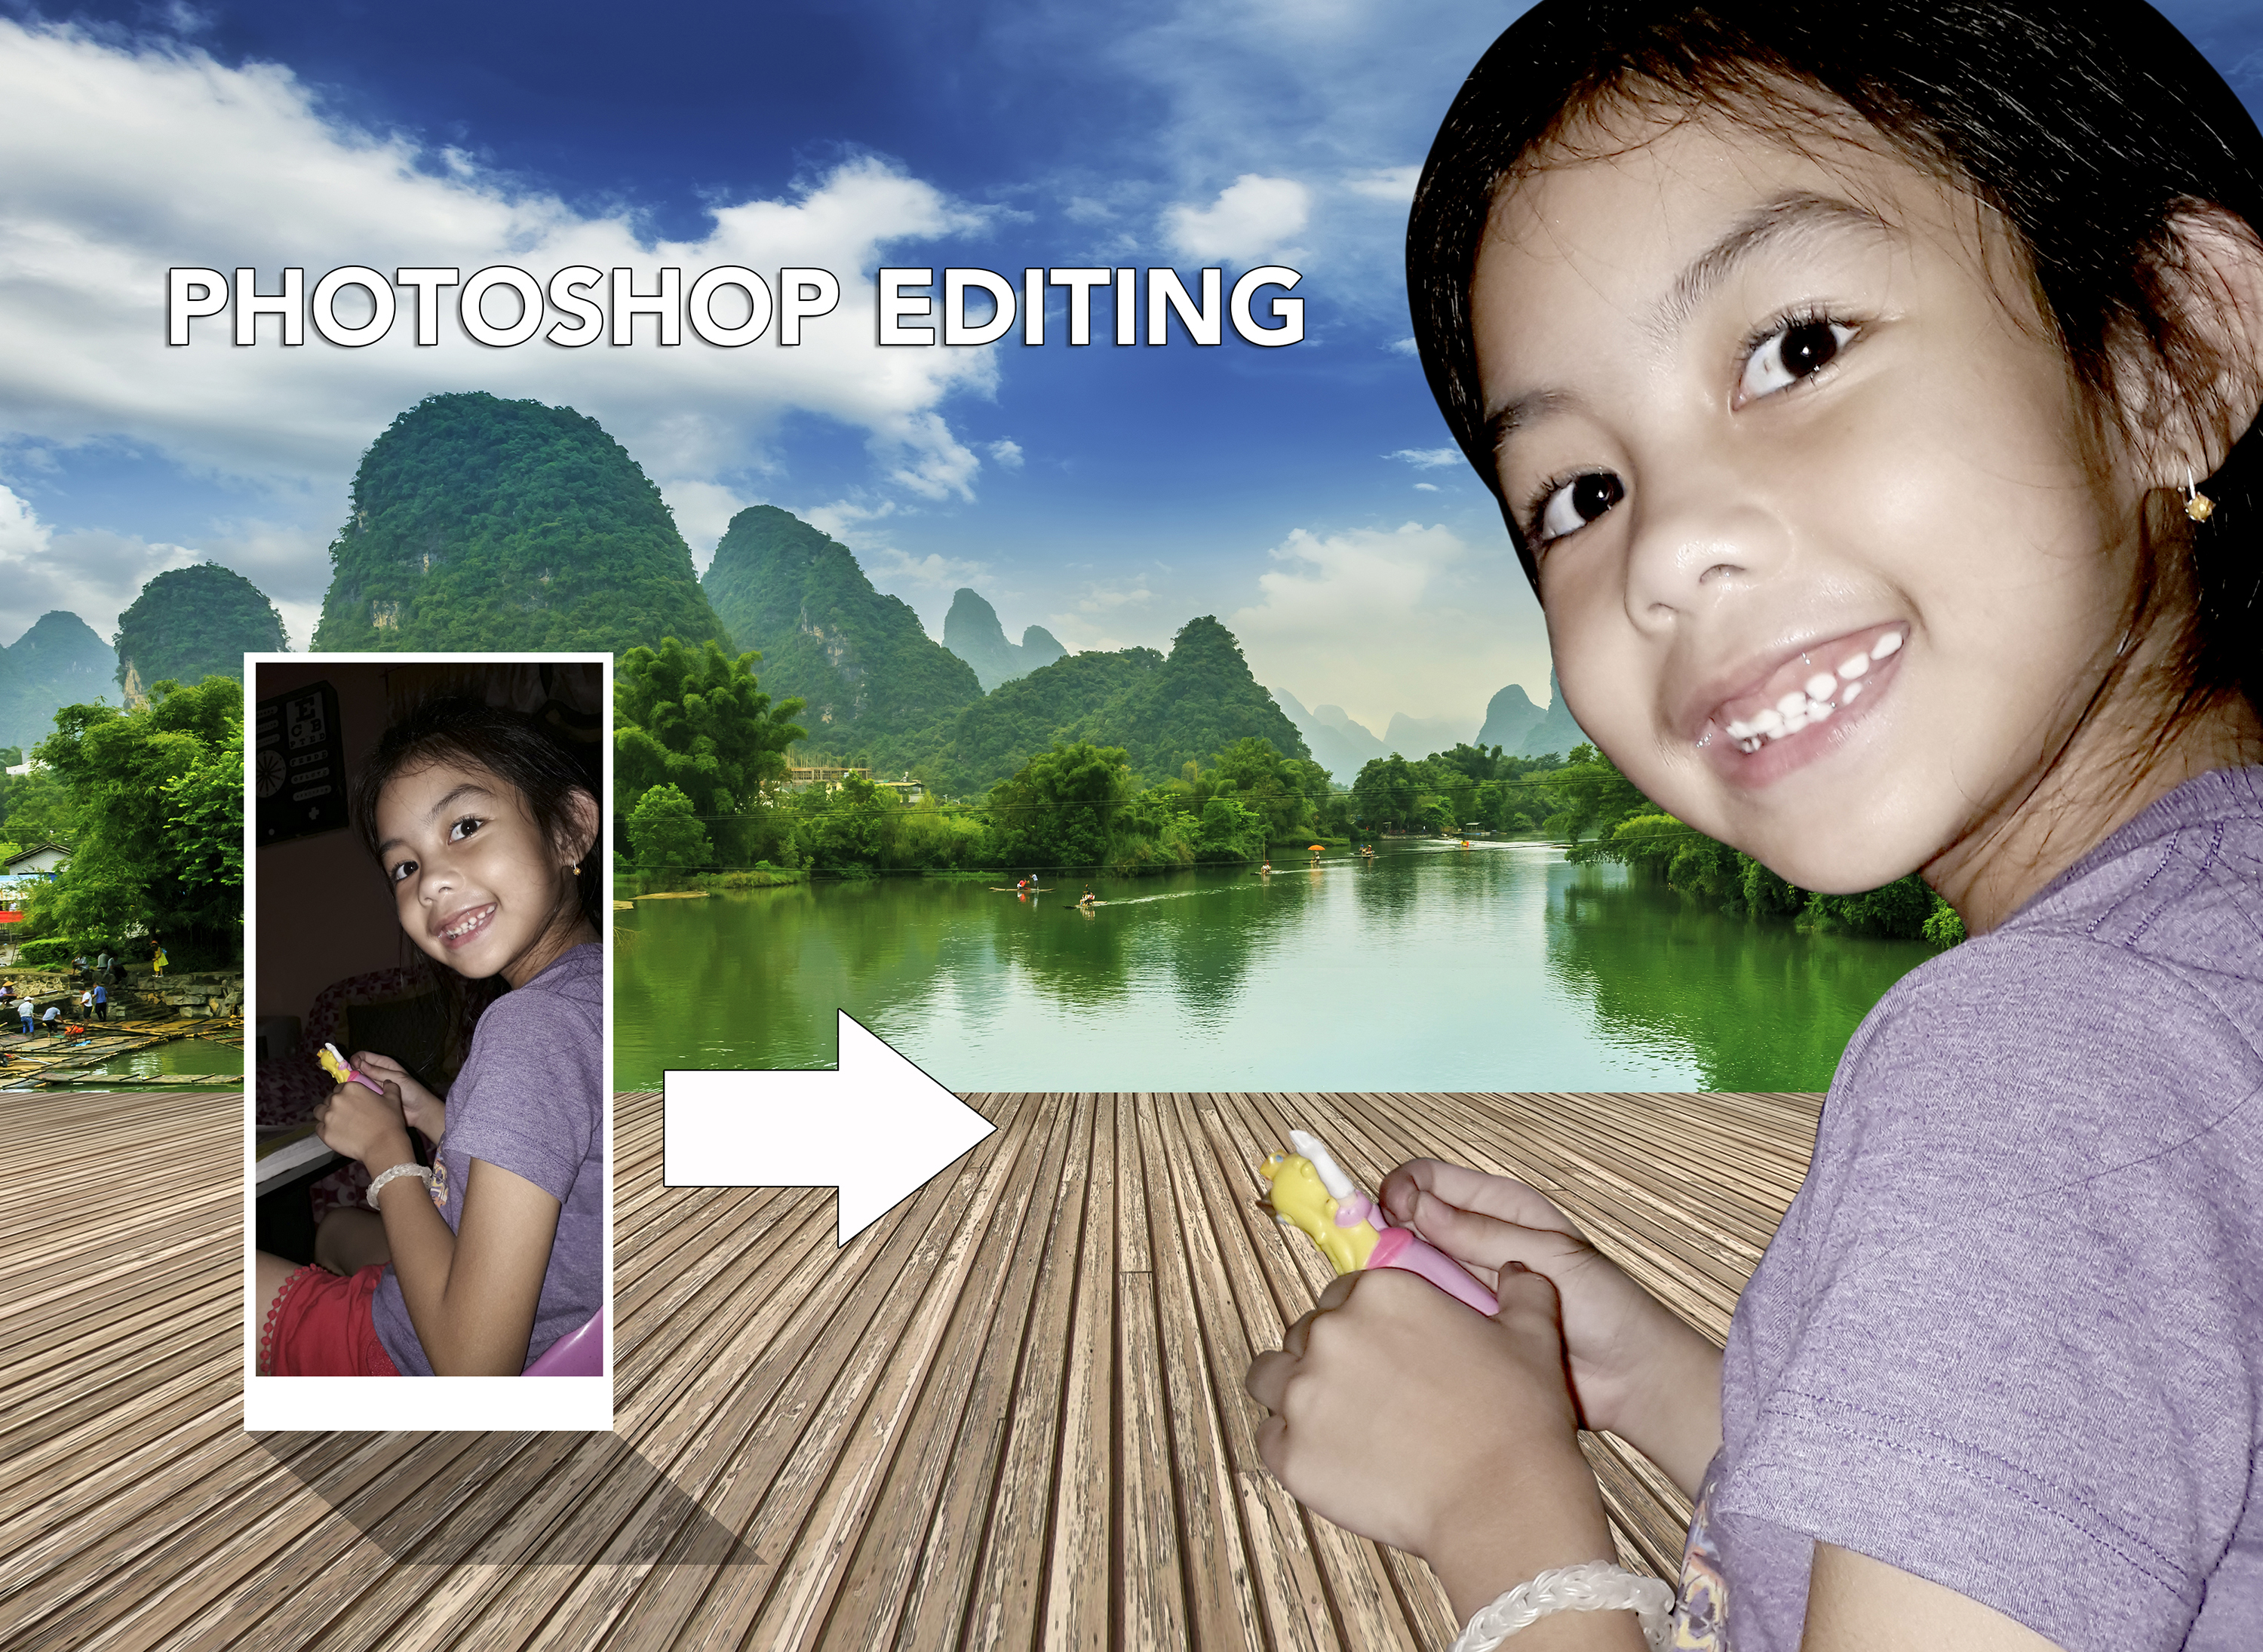 I will do any photoshop work and editing